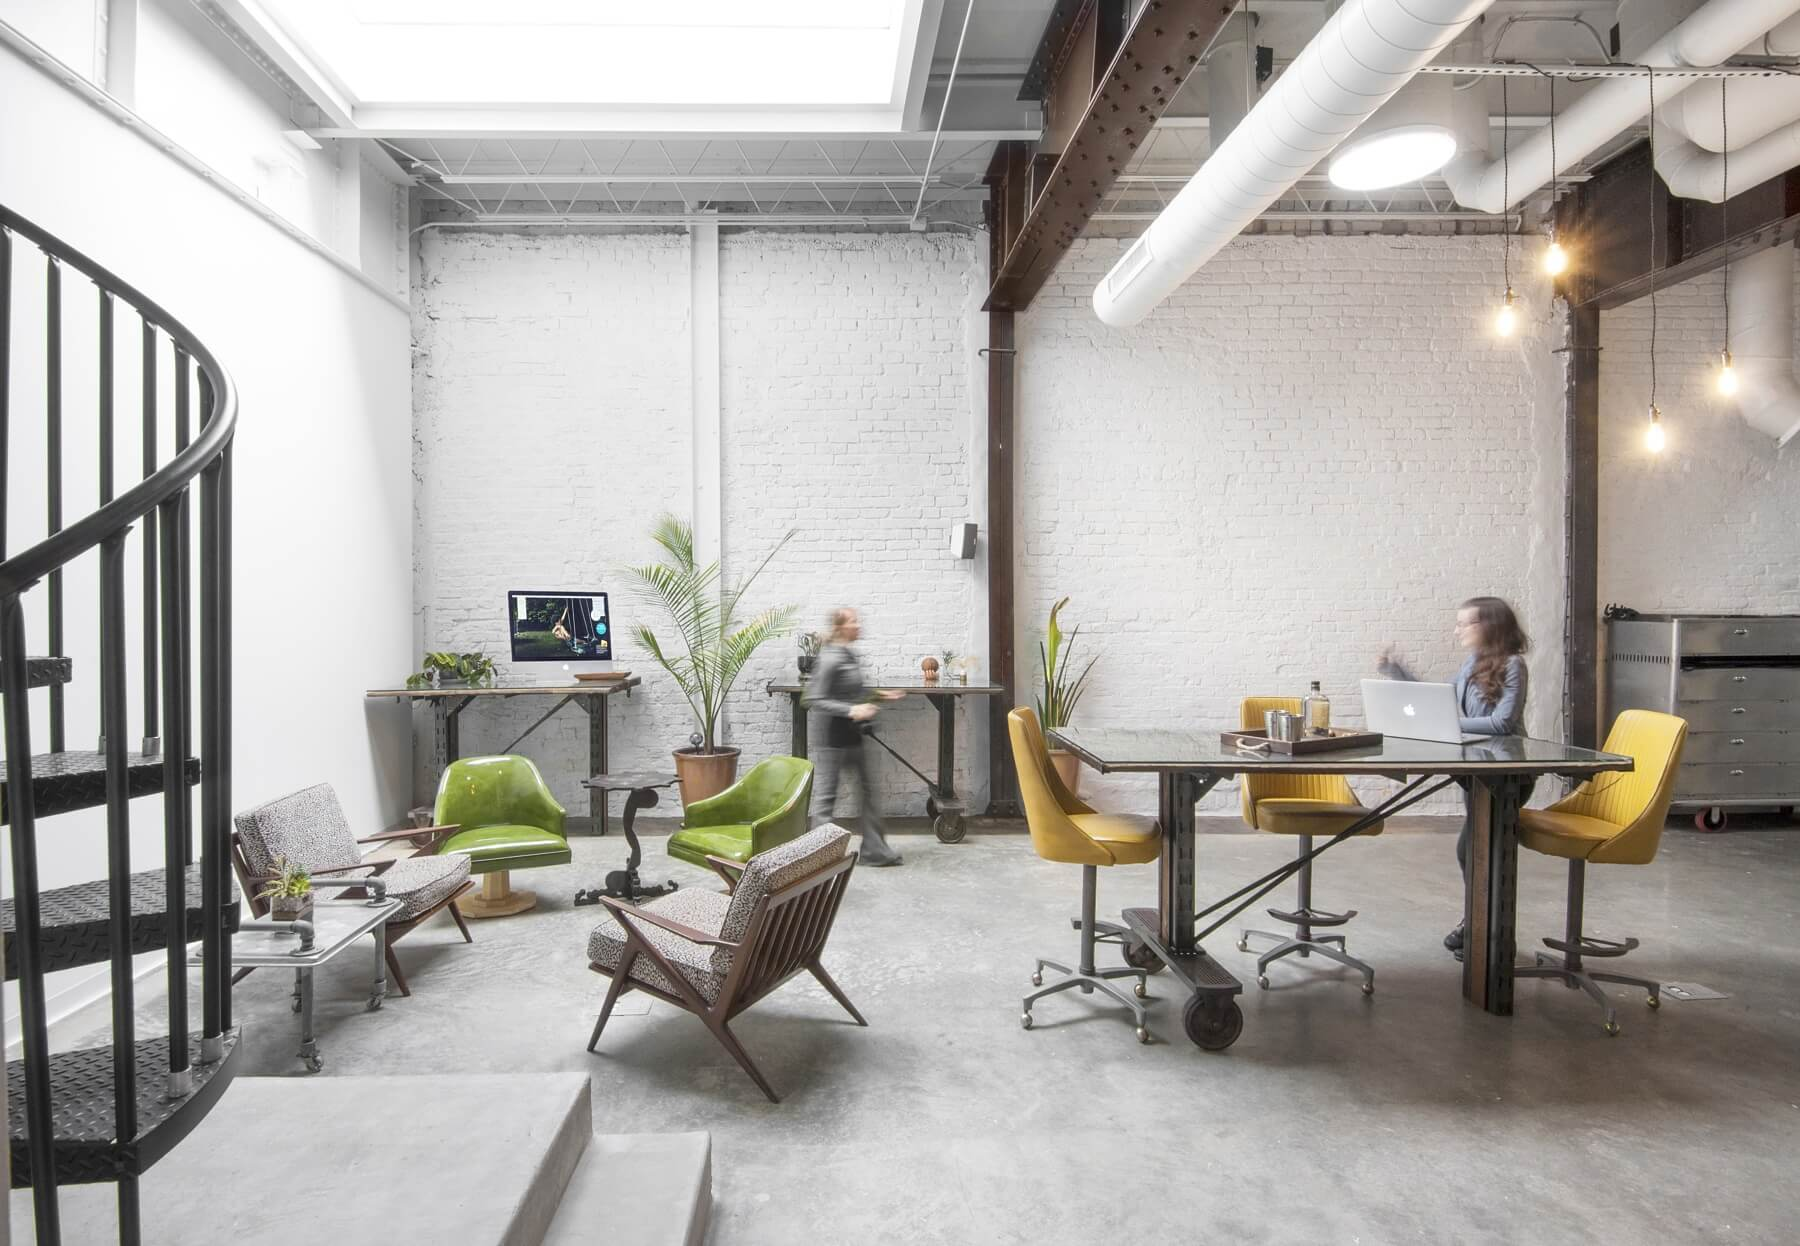 Studio conference spaces and work stations | Image: Liesa Cole